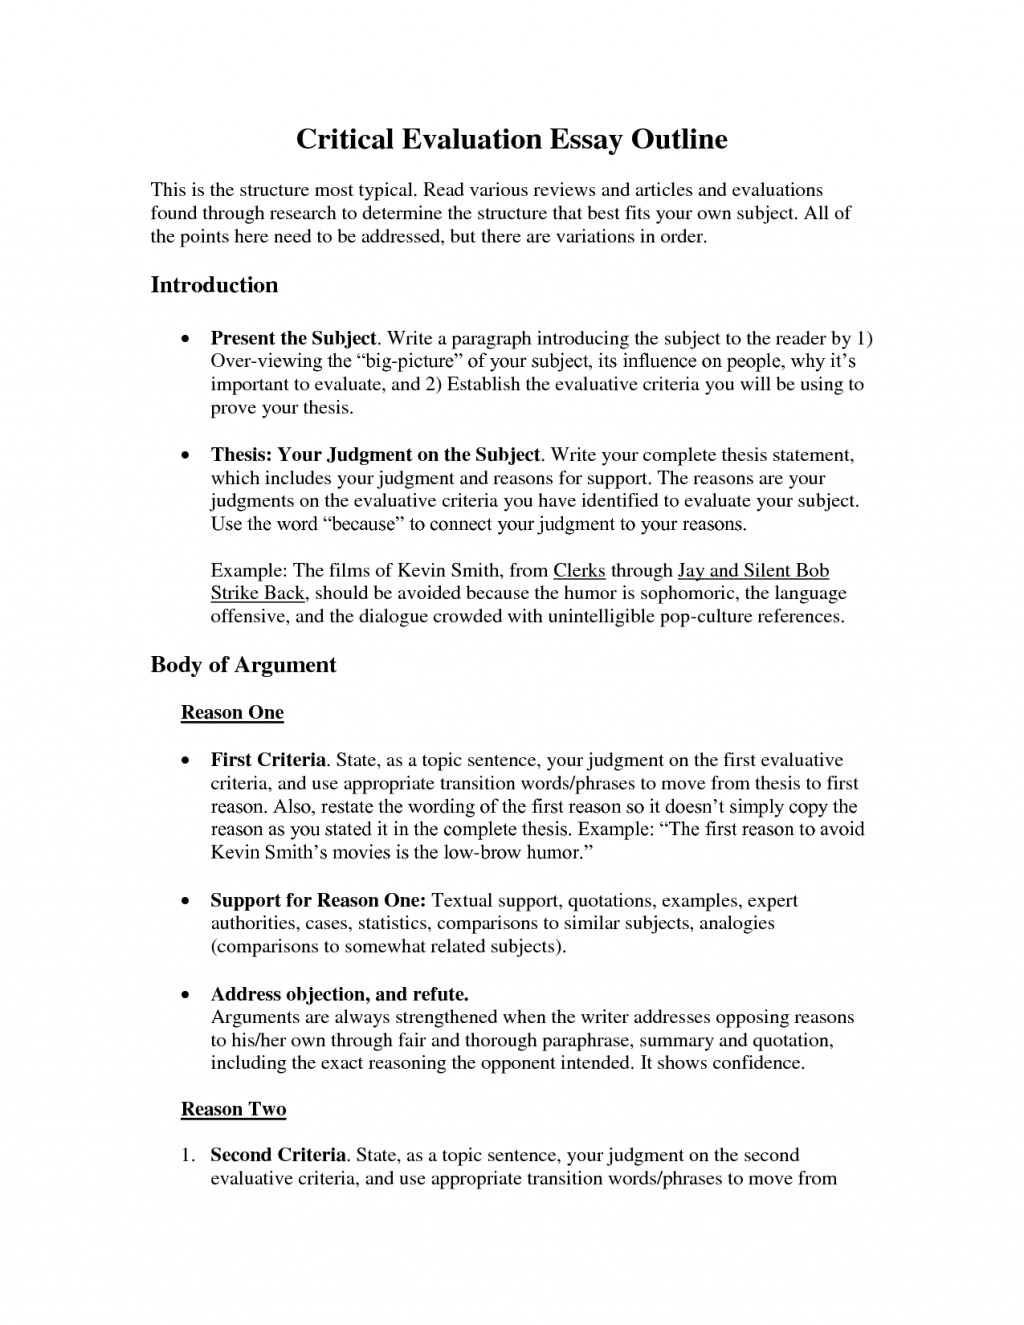 004 Critical Evaluation Essay Example Sample L Incredible Unique Topics On Horror Movies Definition Large